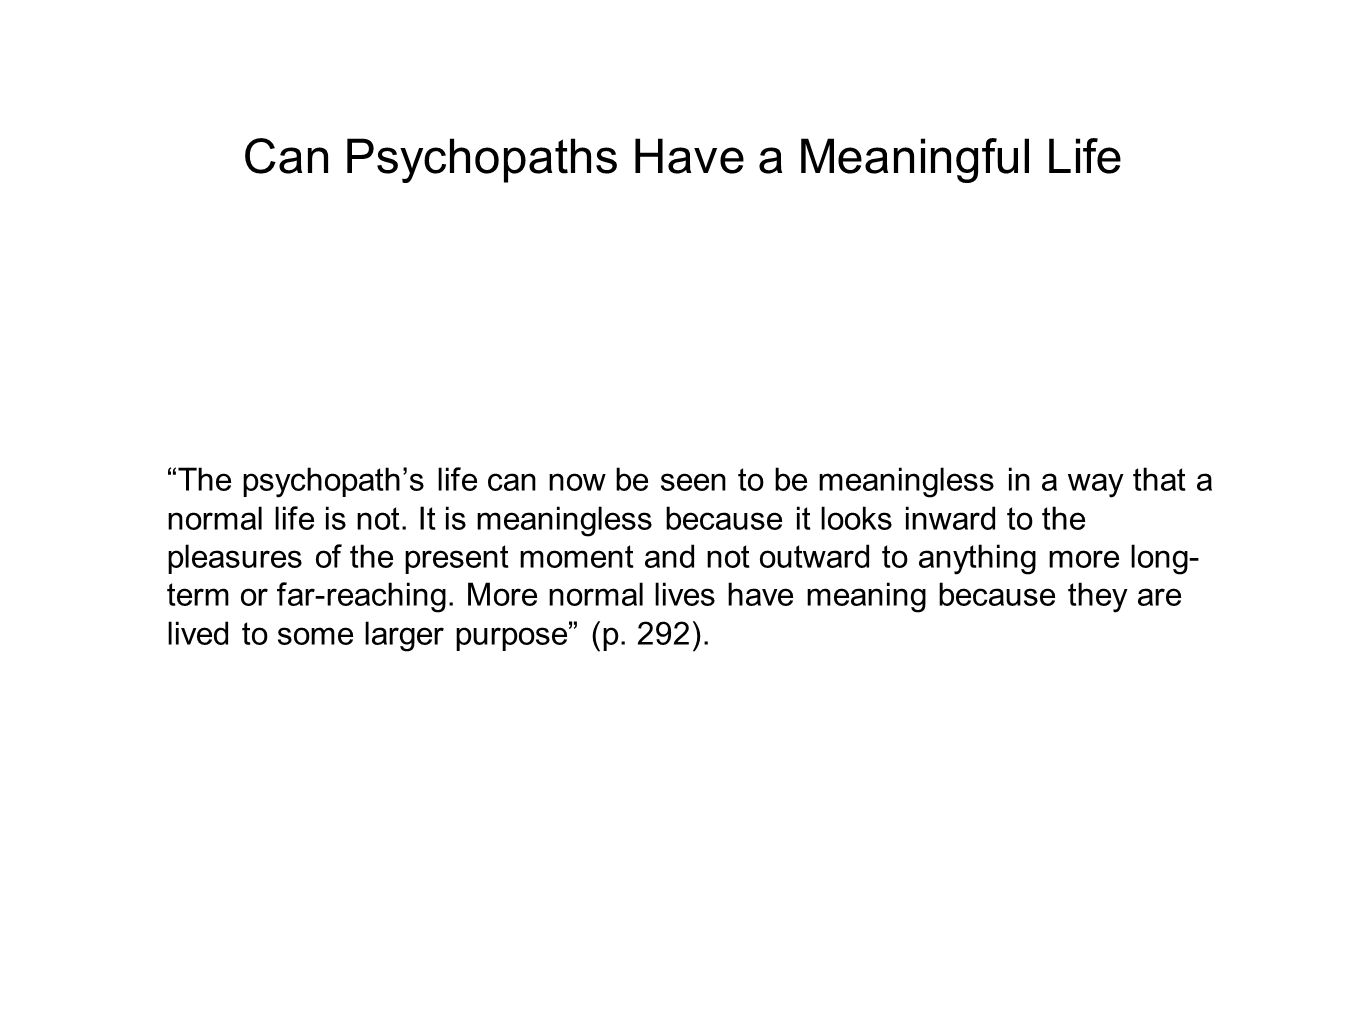 Can Psychopaths Have a Meaningful Life